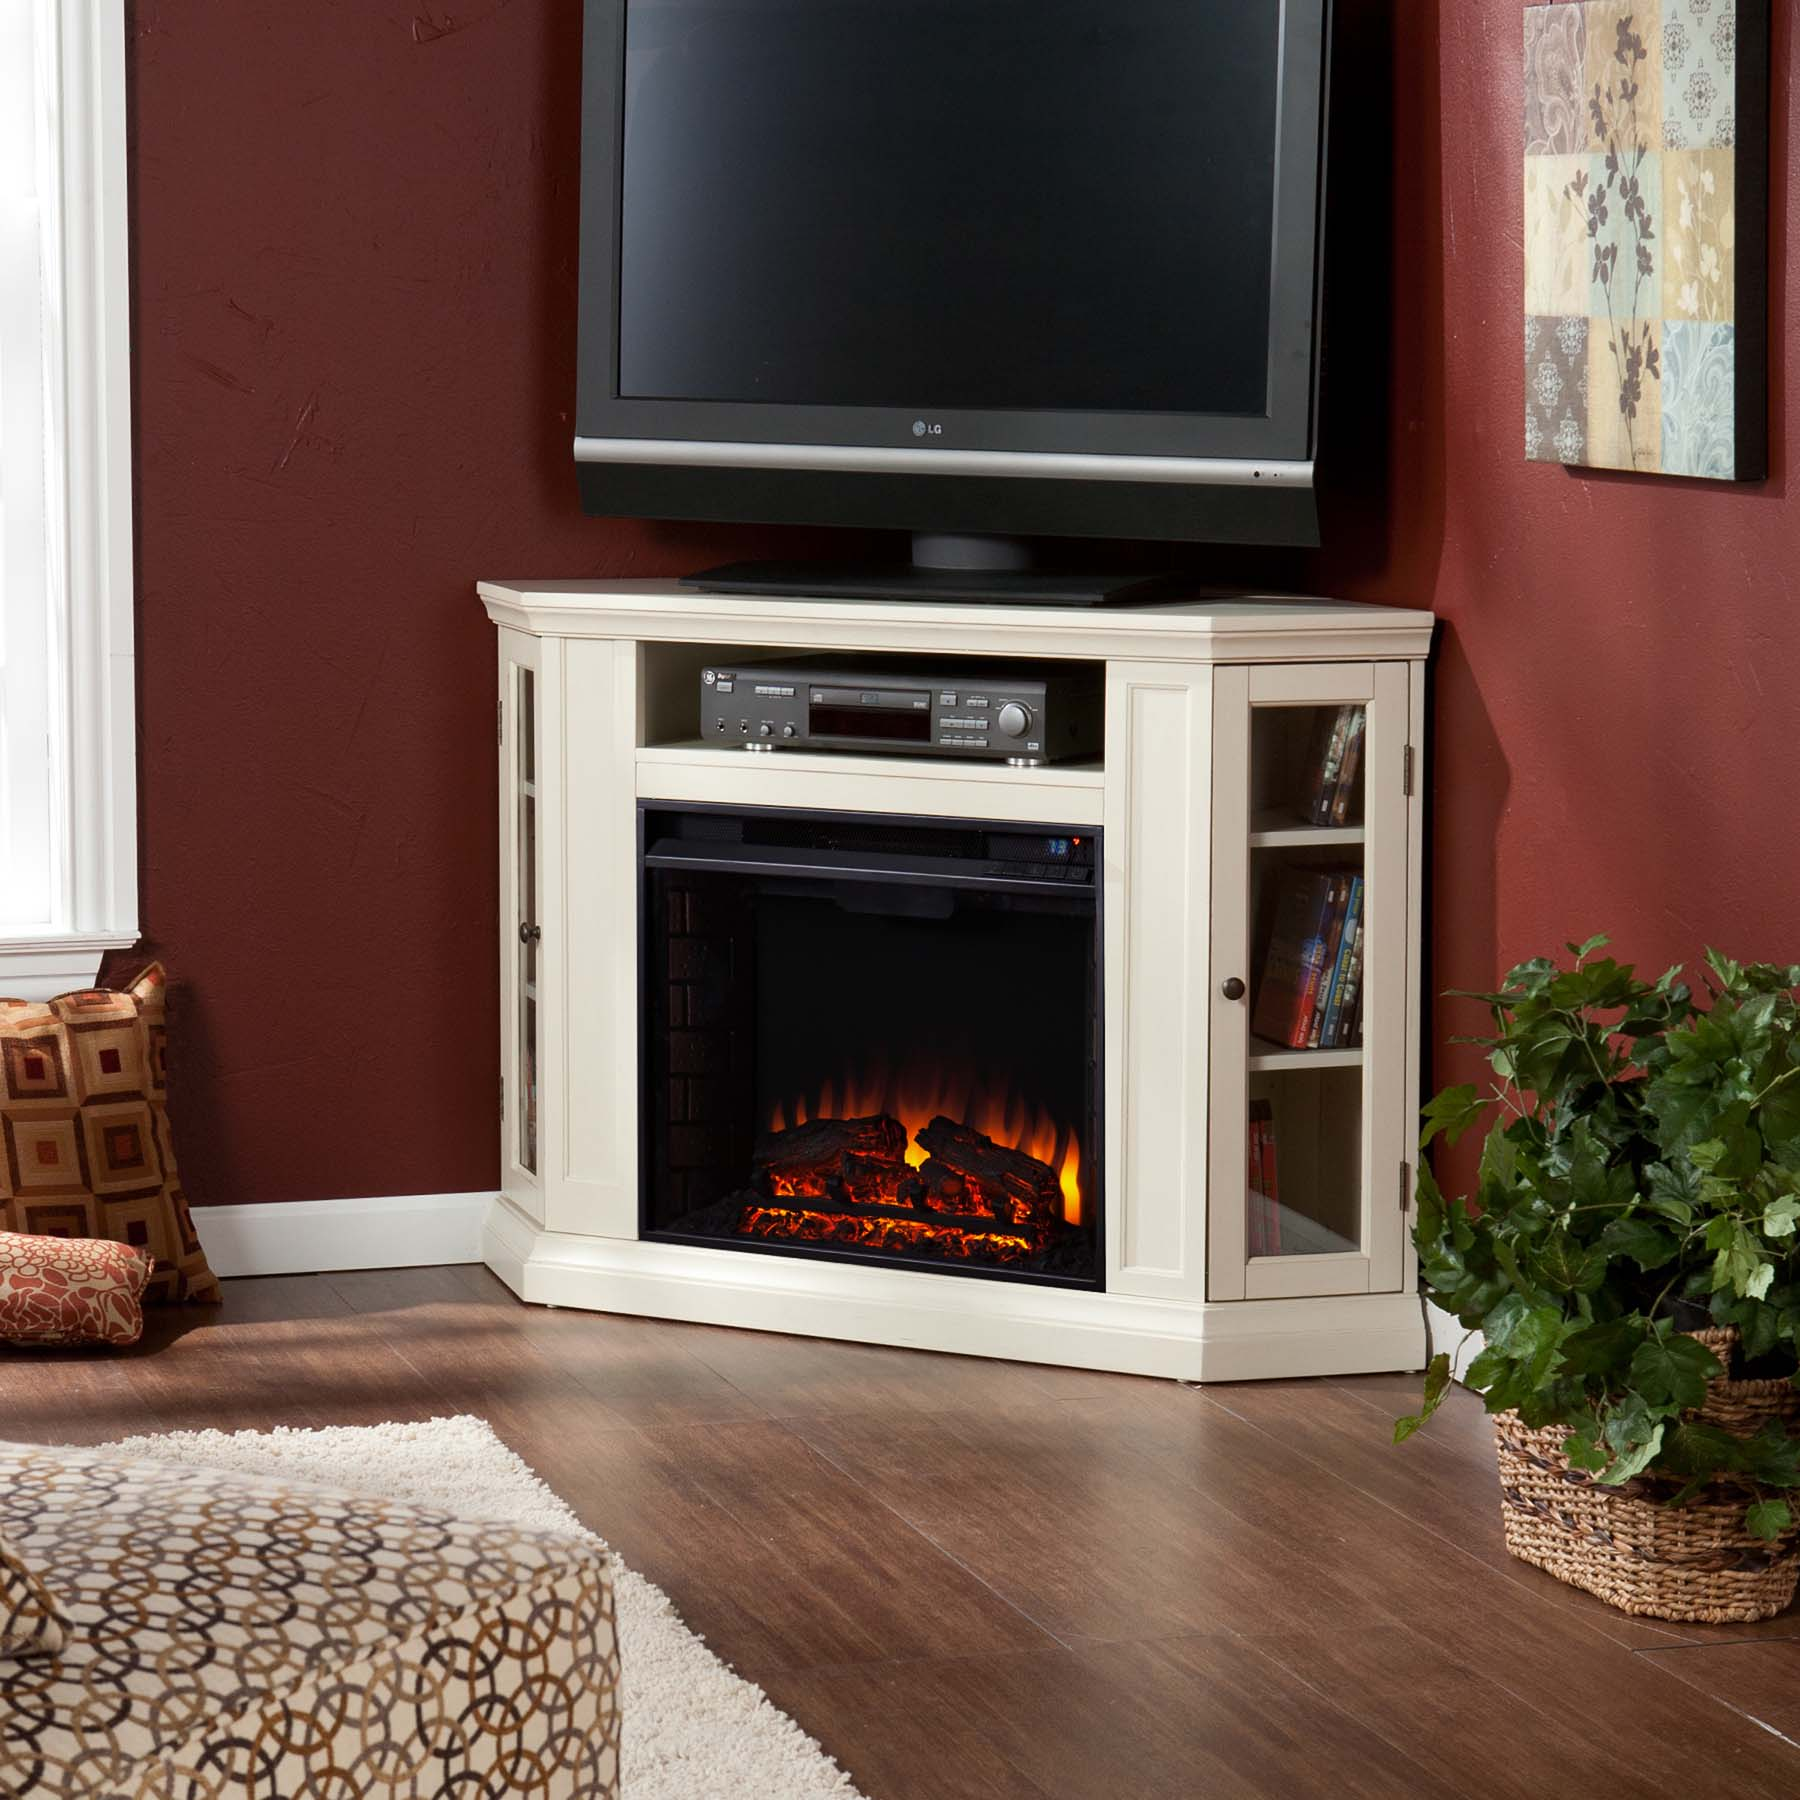 Get free shipping on Corner Electric Fireplace Heaters when you place your order today. Shop a wide selection including corner electric fireplace TV stands.